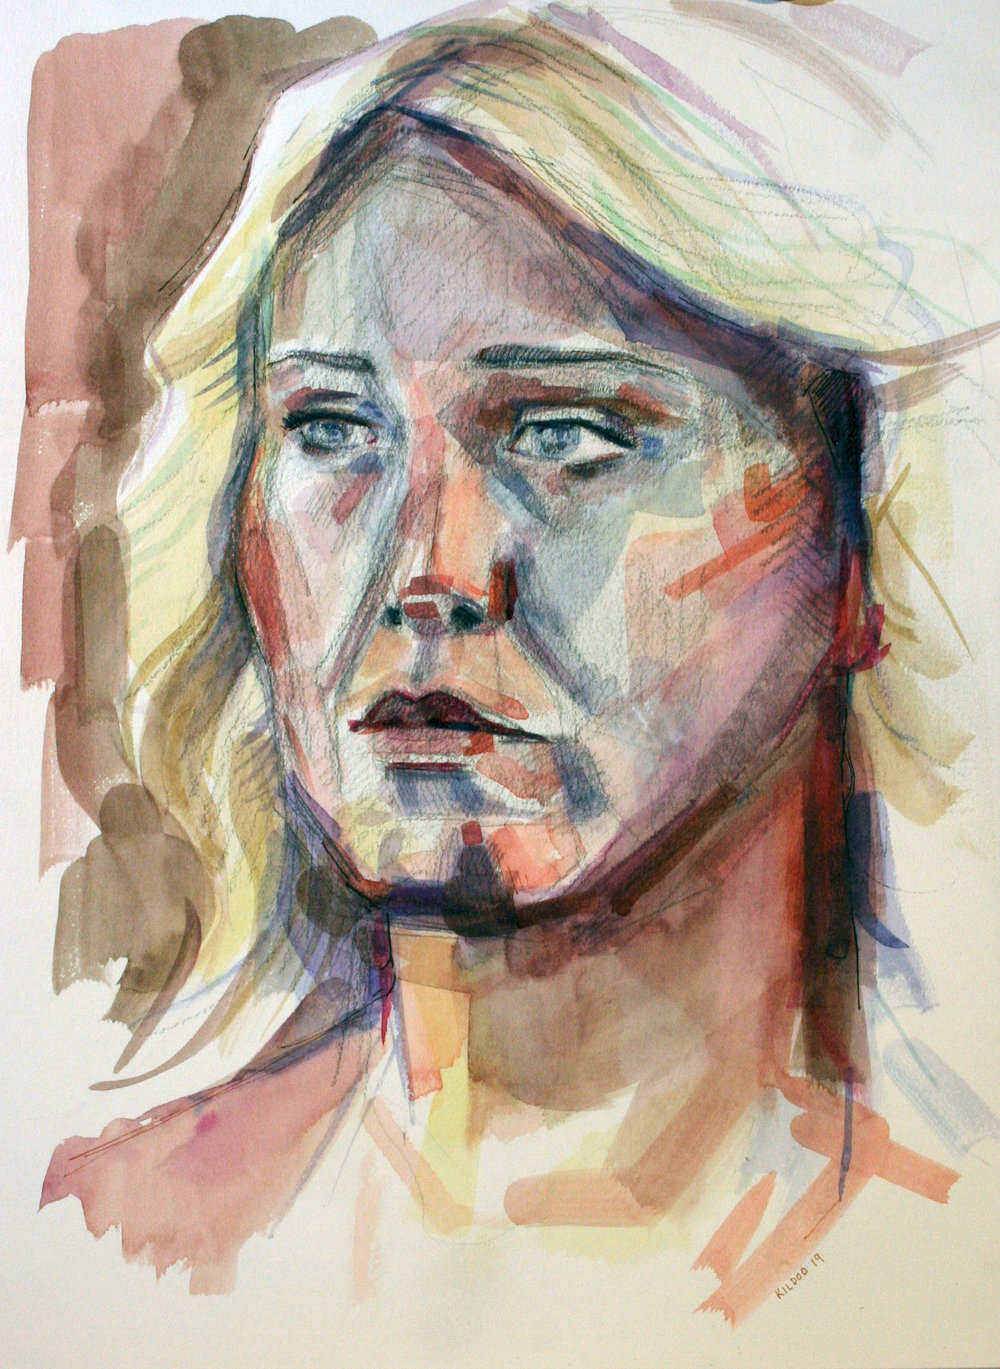 Grace Kildoo McConnell did this watercolor.